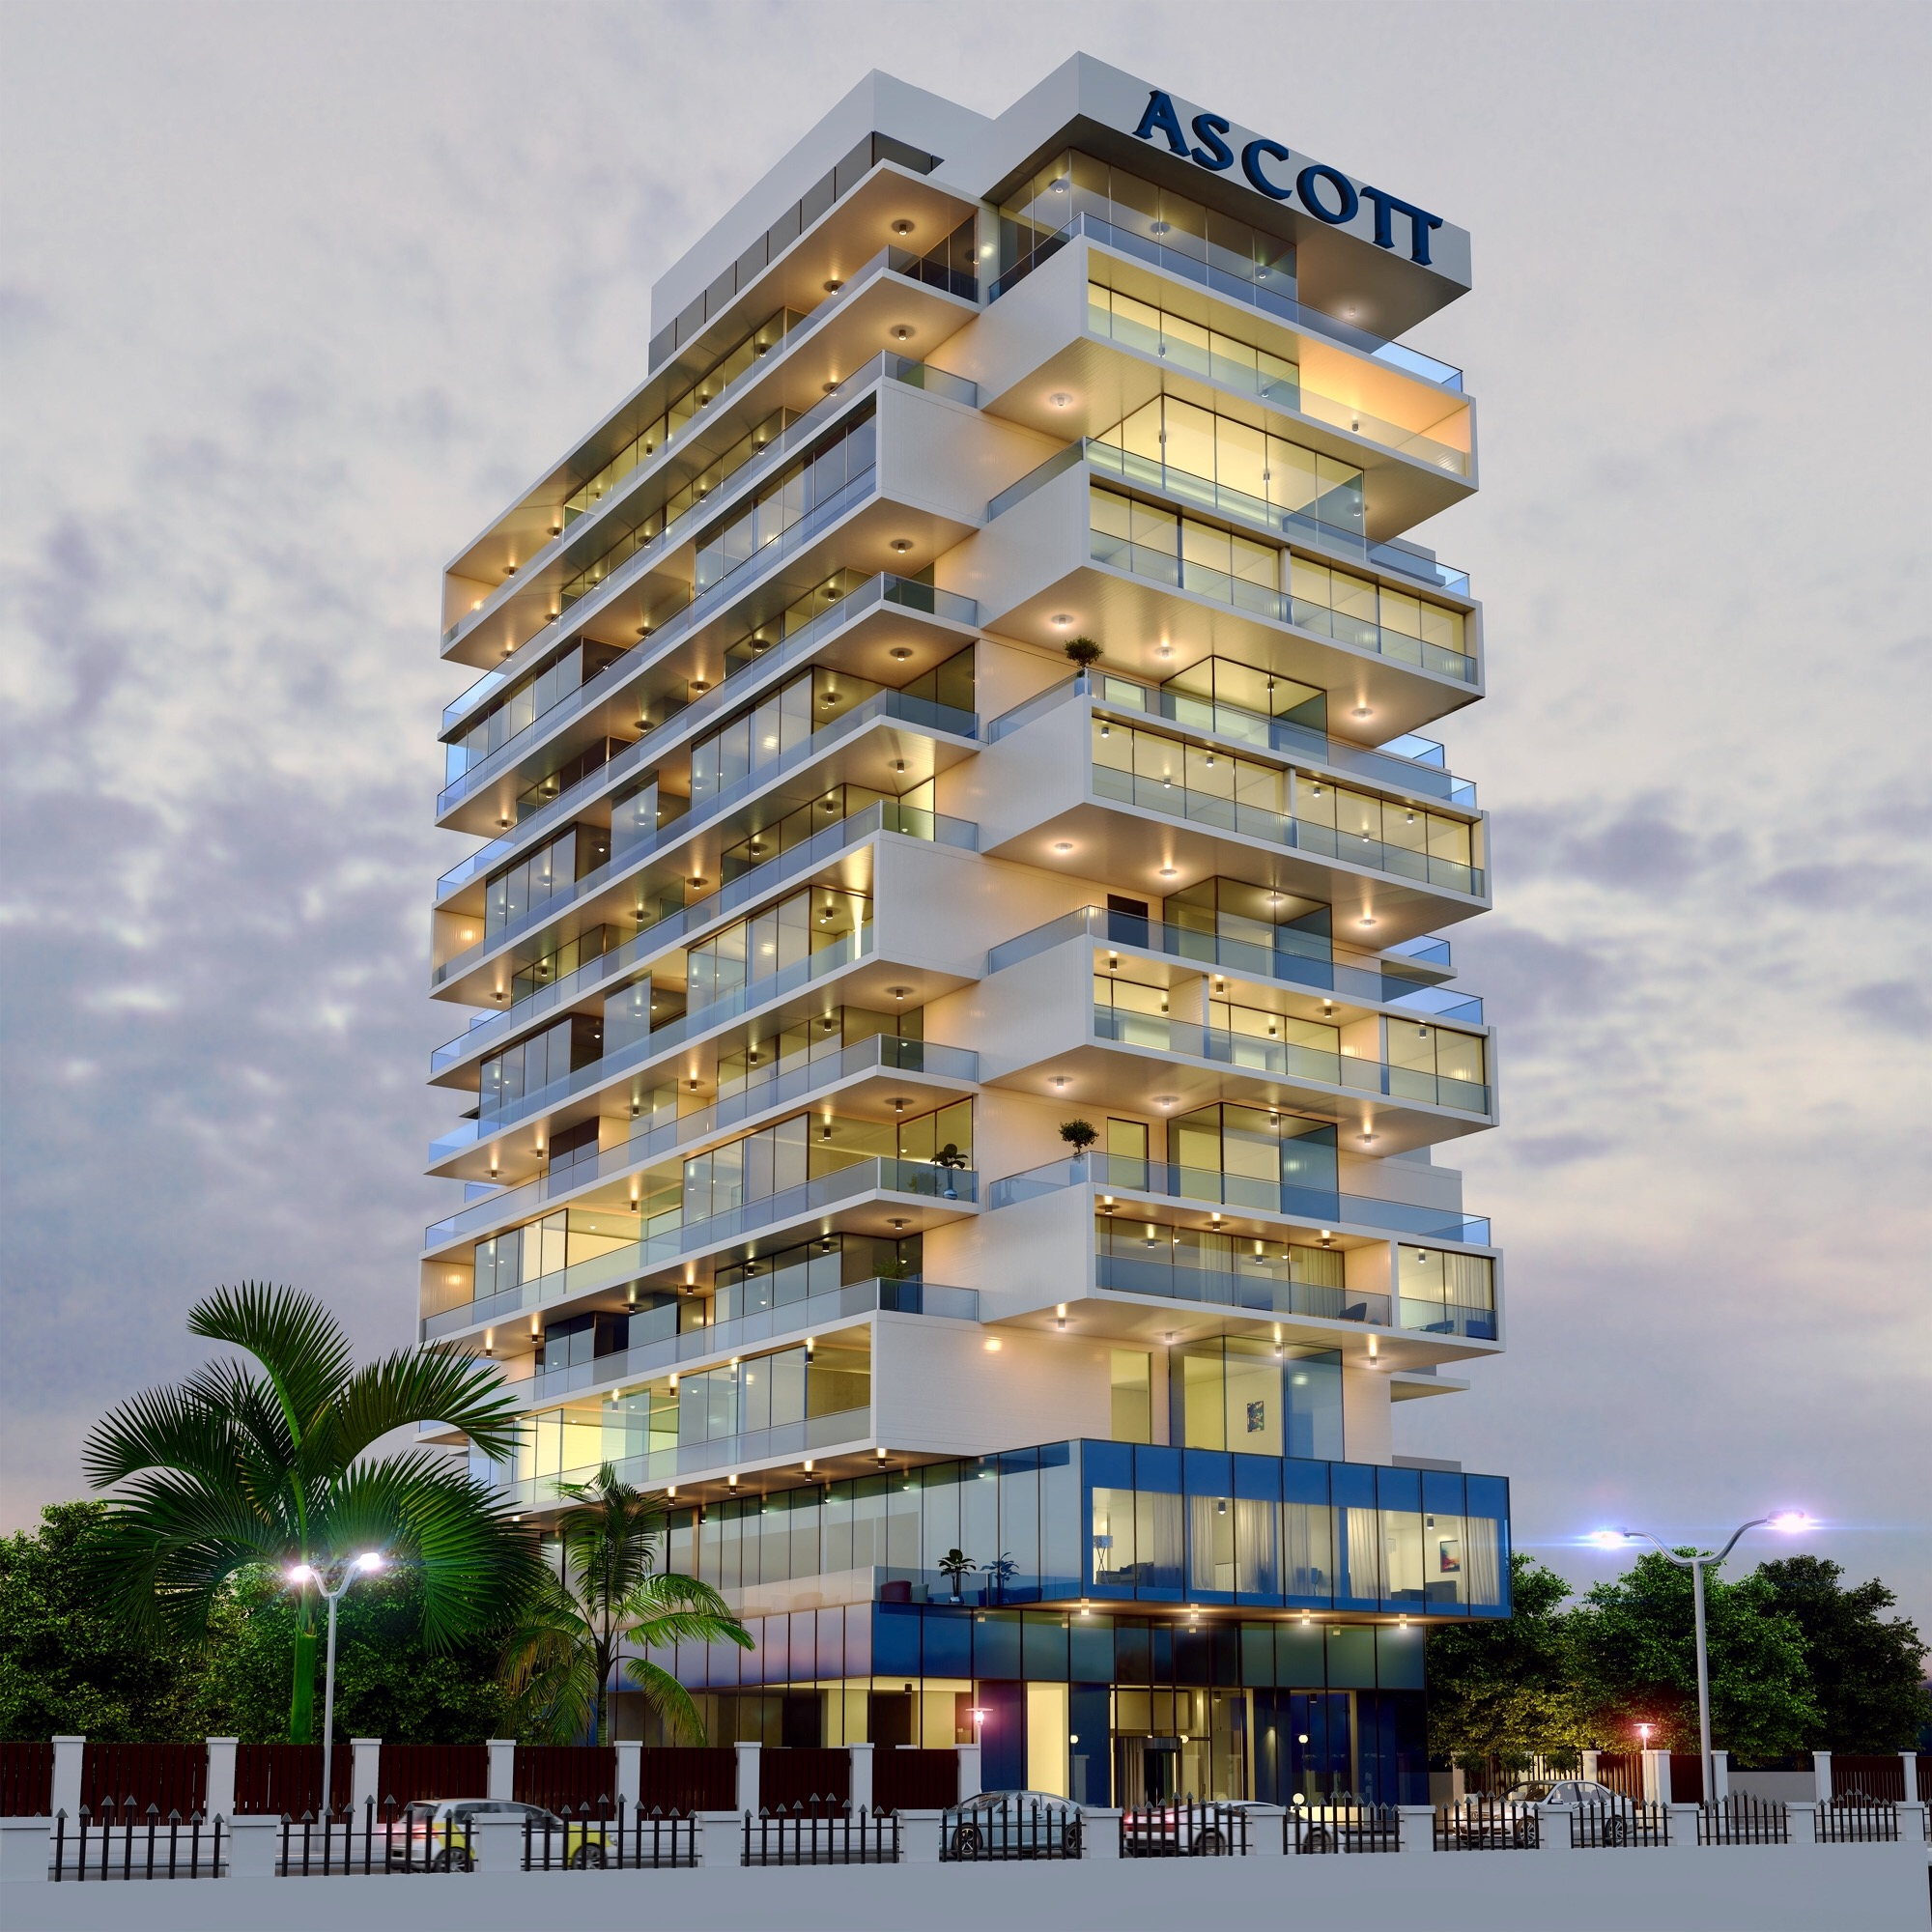 Ascott Caps Record Growth Year Of Over 21 000 Newly Added